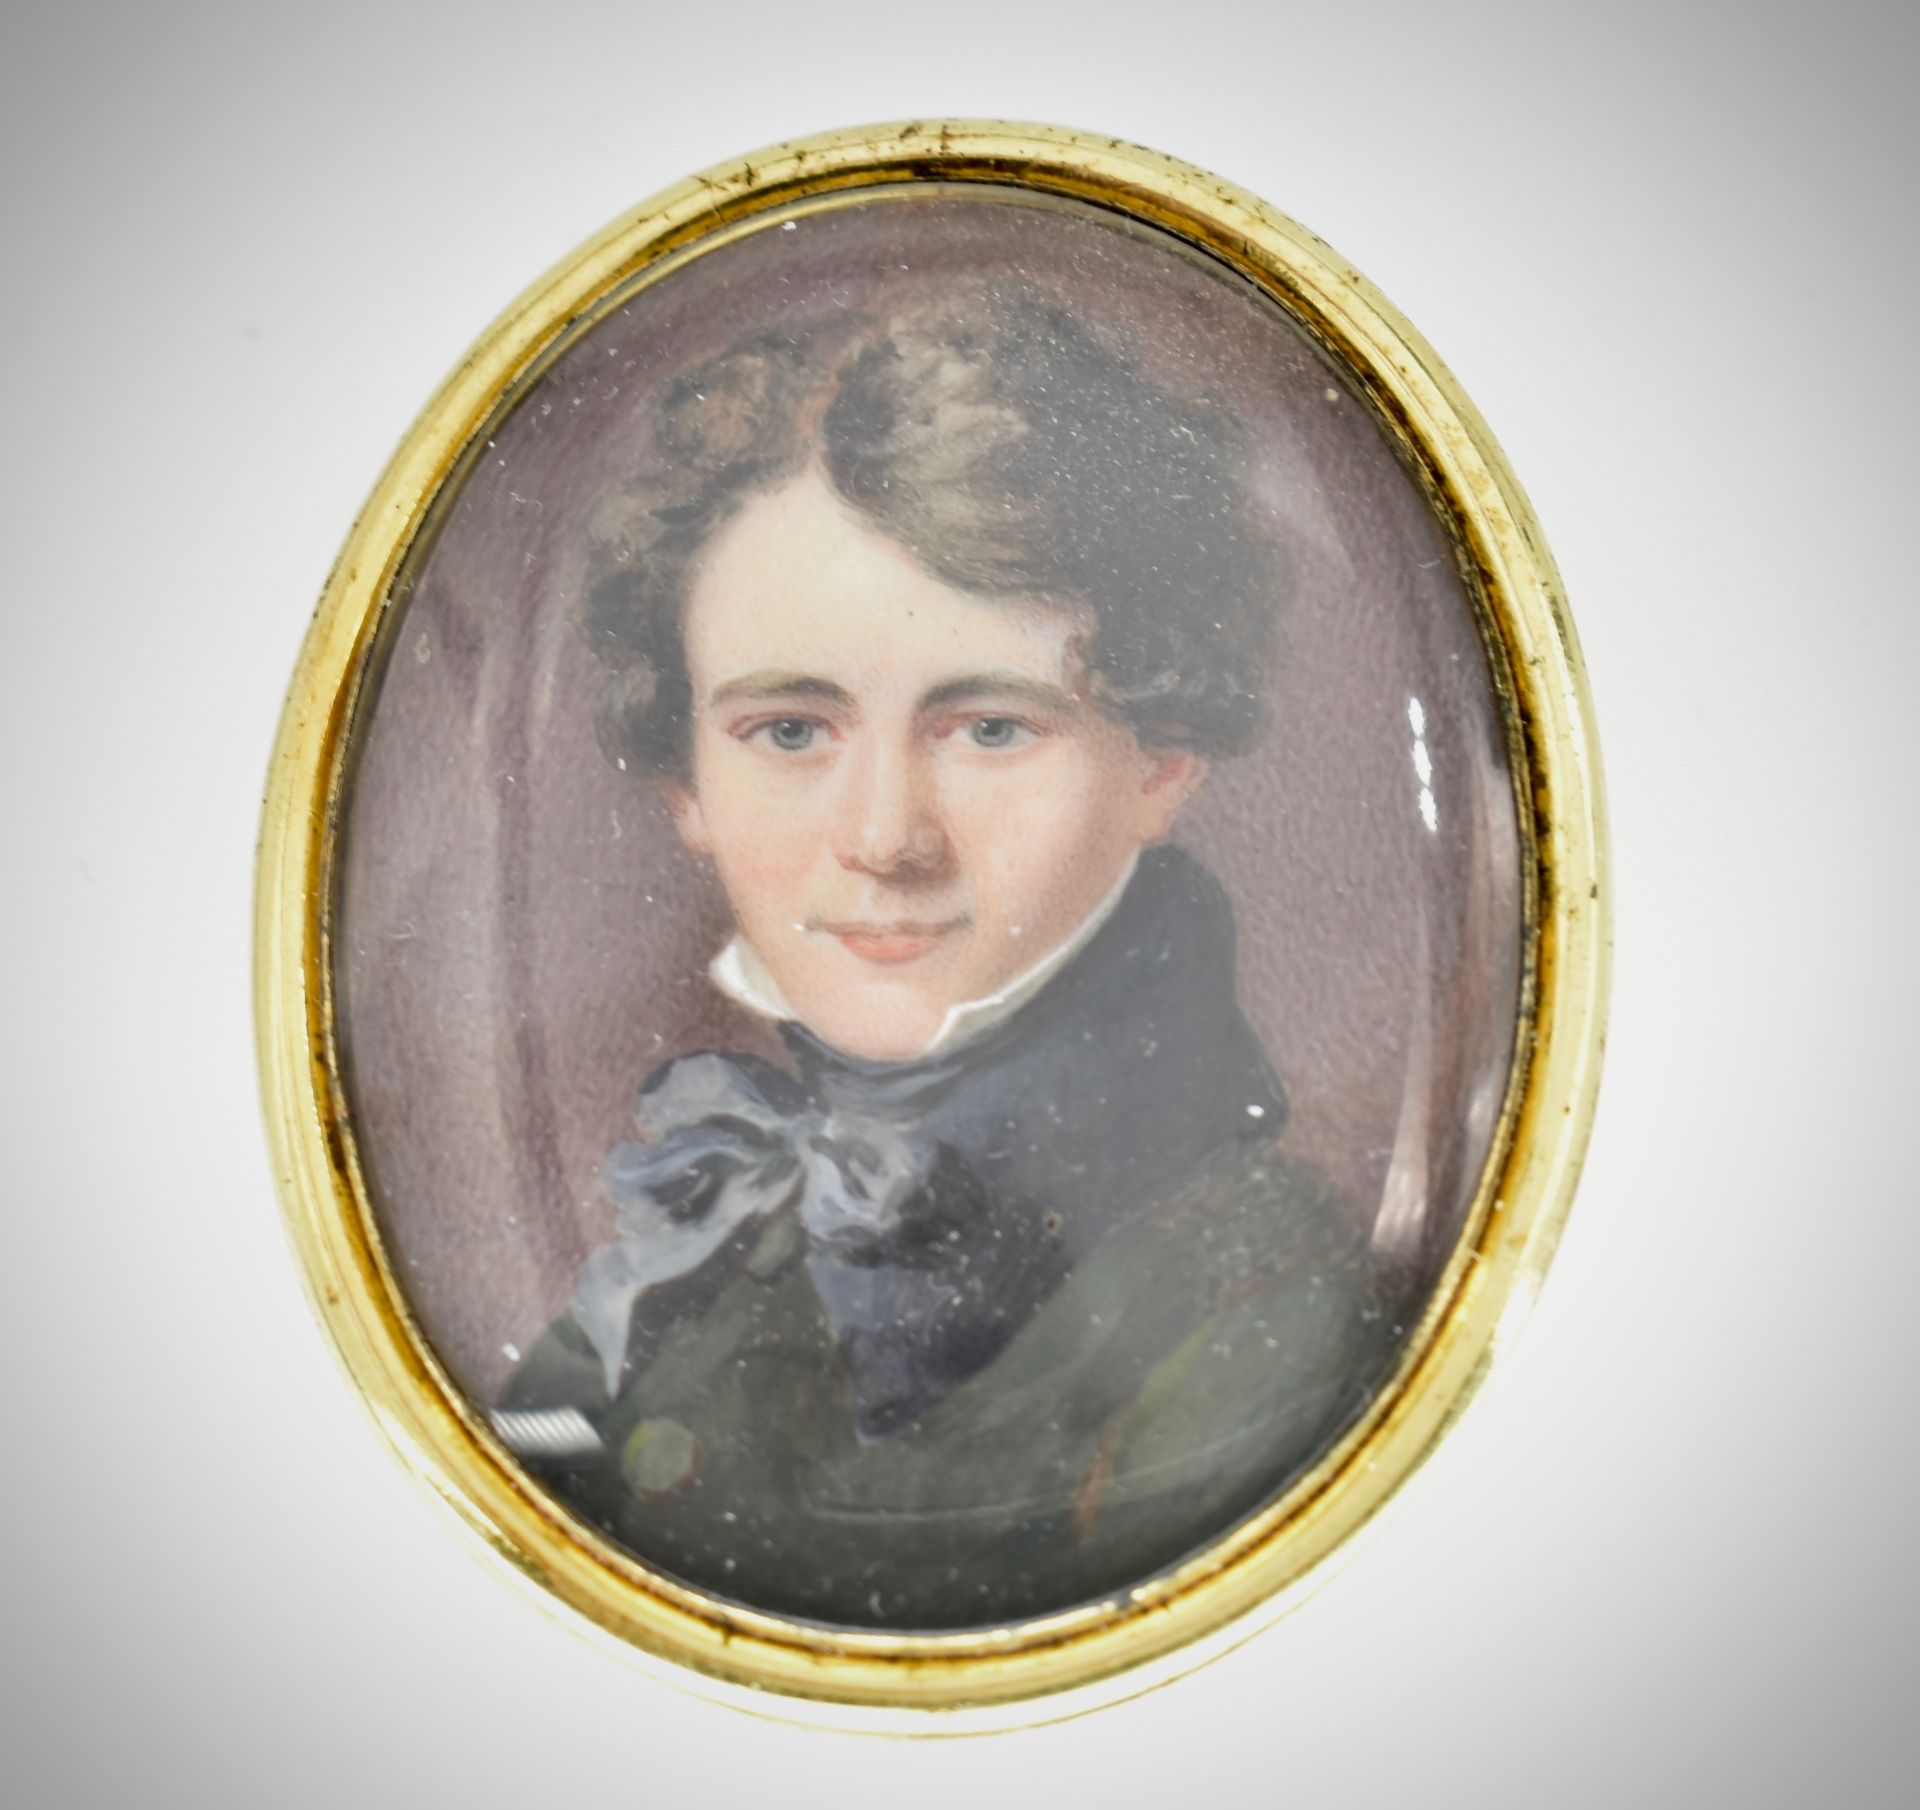 GEORGIAN PORTRAIT MINIATURE MOURNING BROOCH